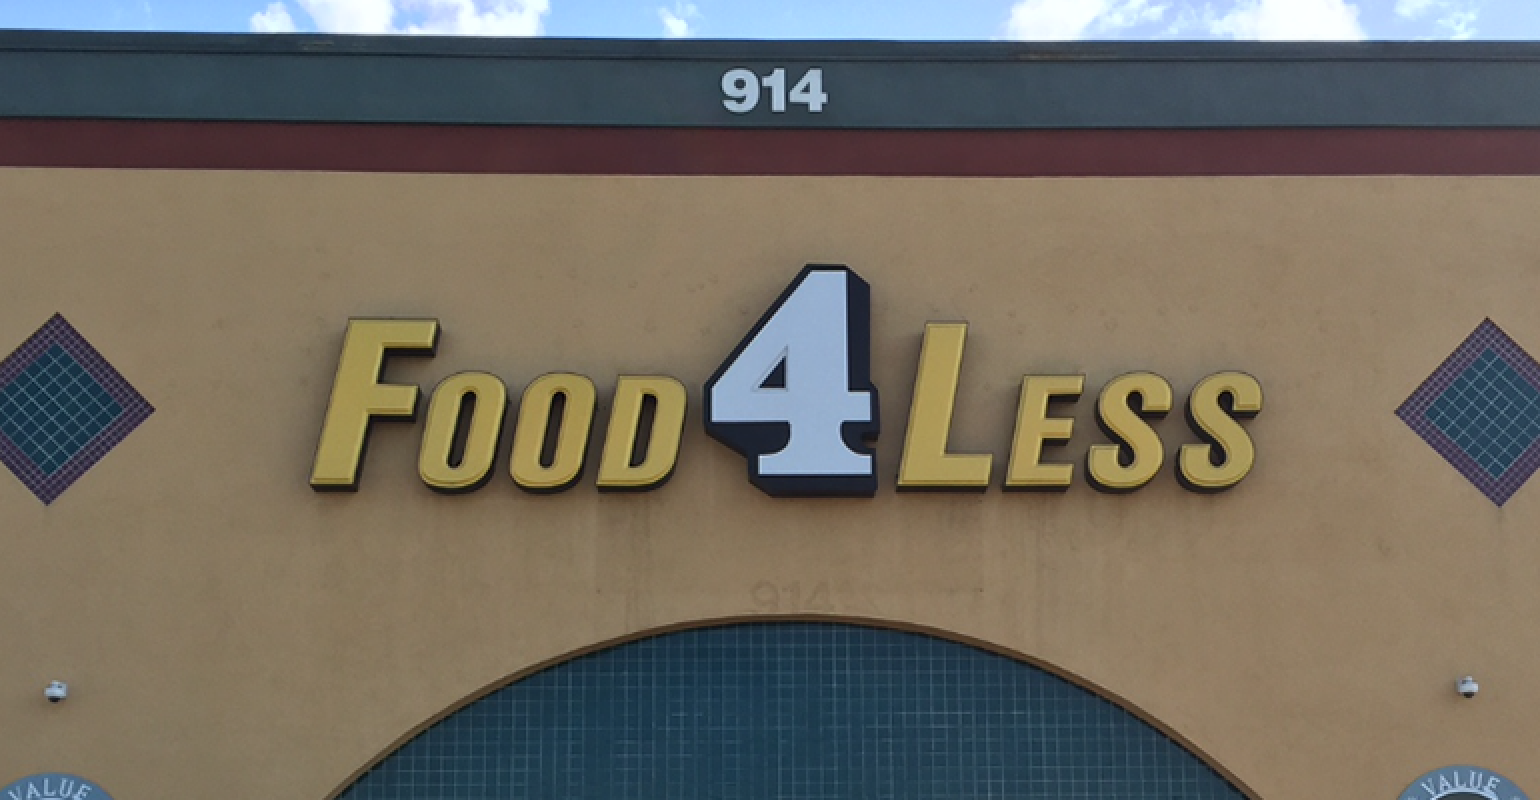 Food 4 Less goes live with Instacart delivery | Supermarket News